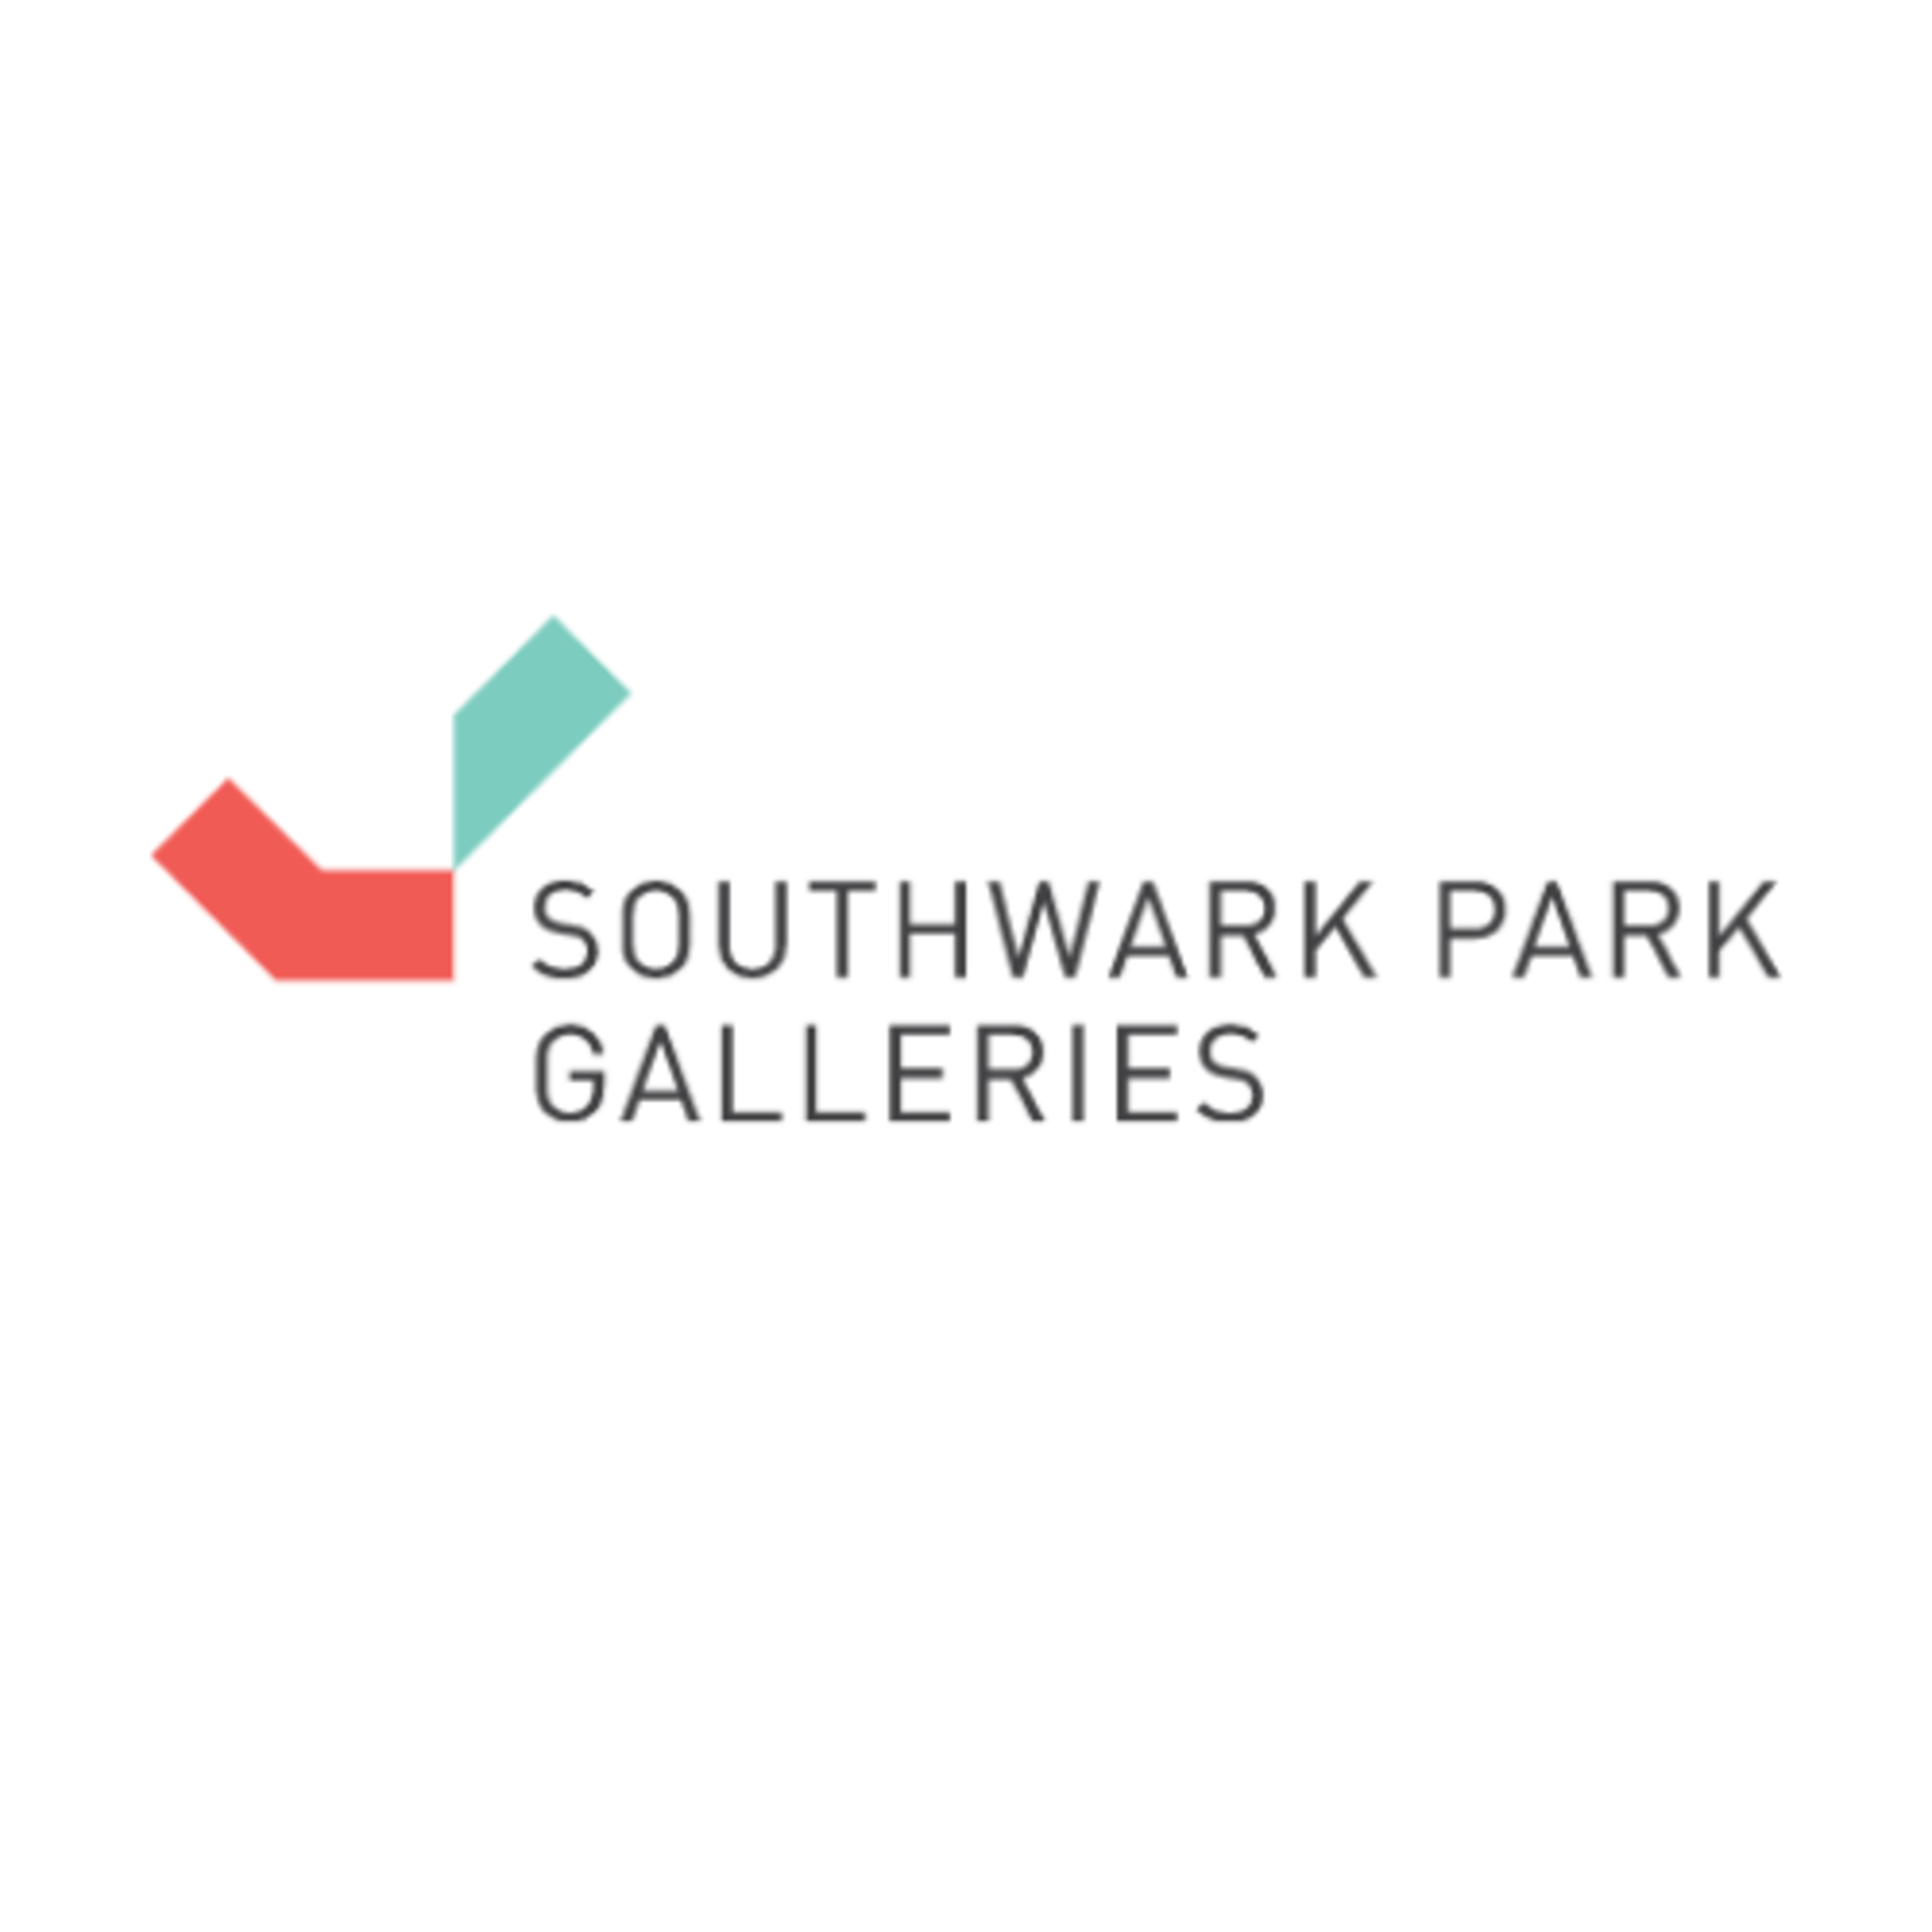 John Harris  from The Southwark Park Galleries speaking about Relieve Furniture